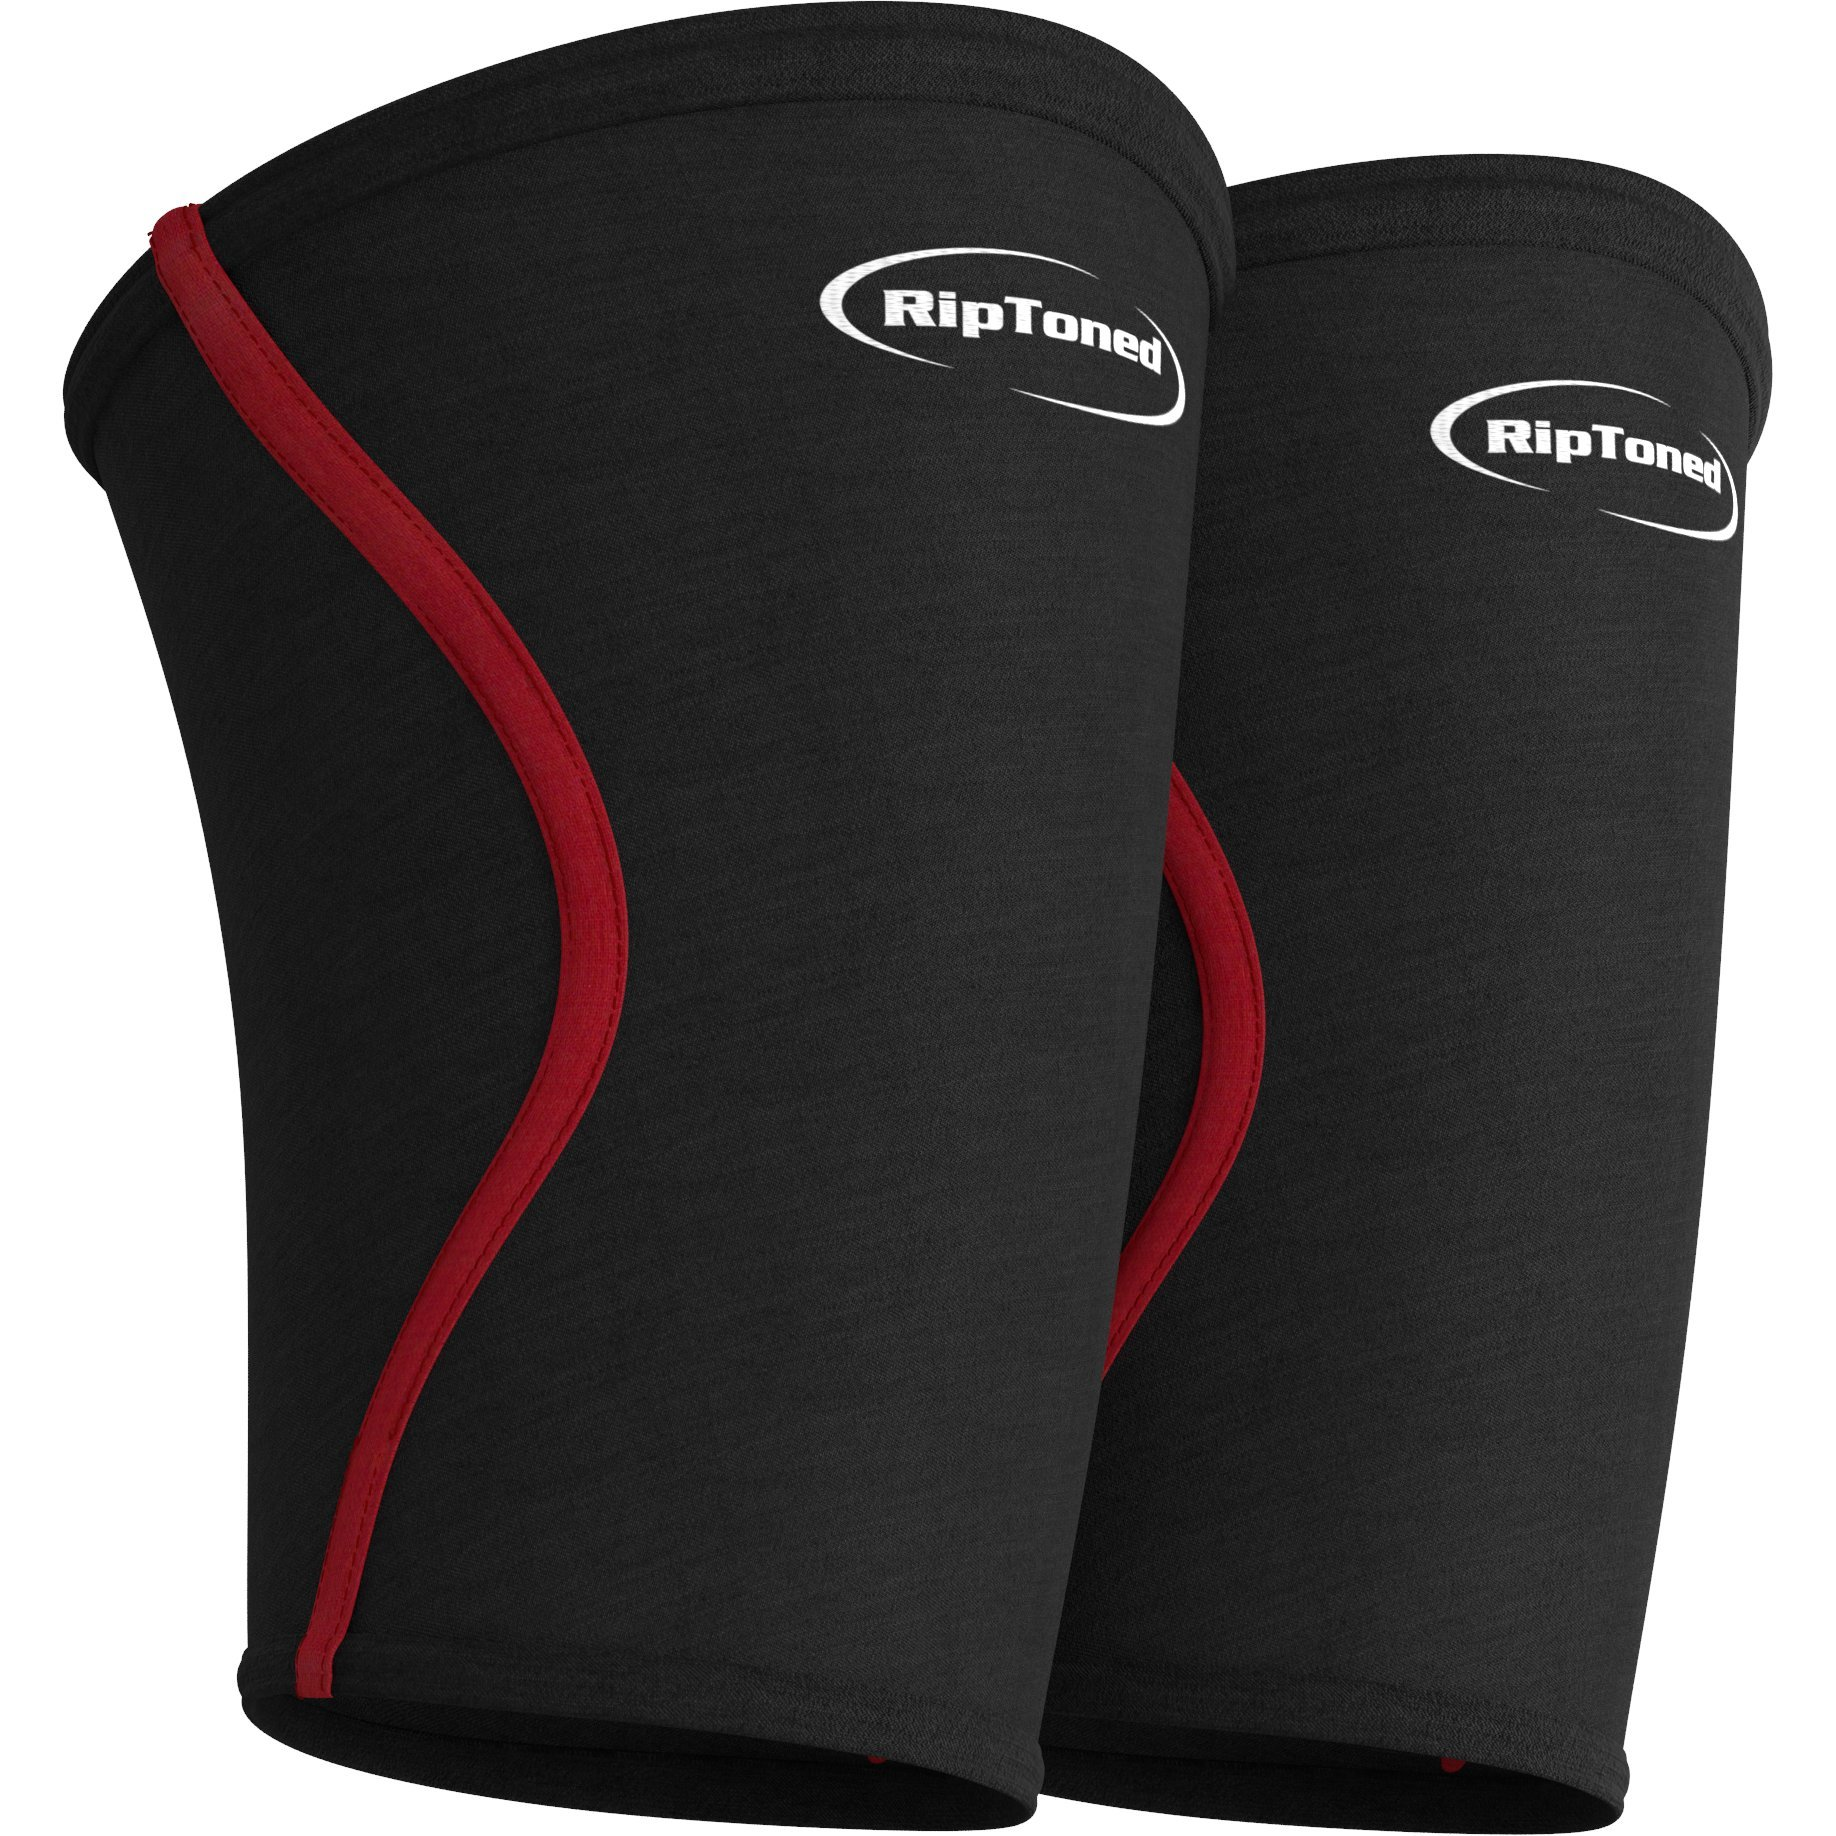 Compression Elbow Sleeves 5mm - Rip Toned - (Pair) Perfect Support for Weightlifting, Tennis, Golf & Basketball *Bonus eBook* Lifetime Replacement Warranty (Medium See Sizing Guide in Images)